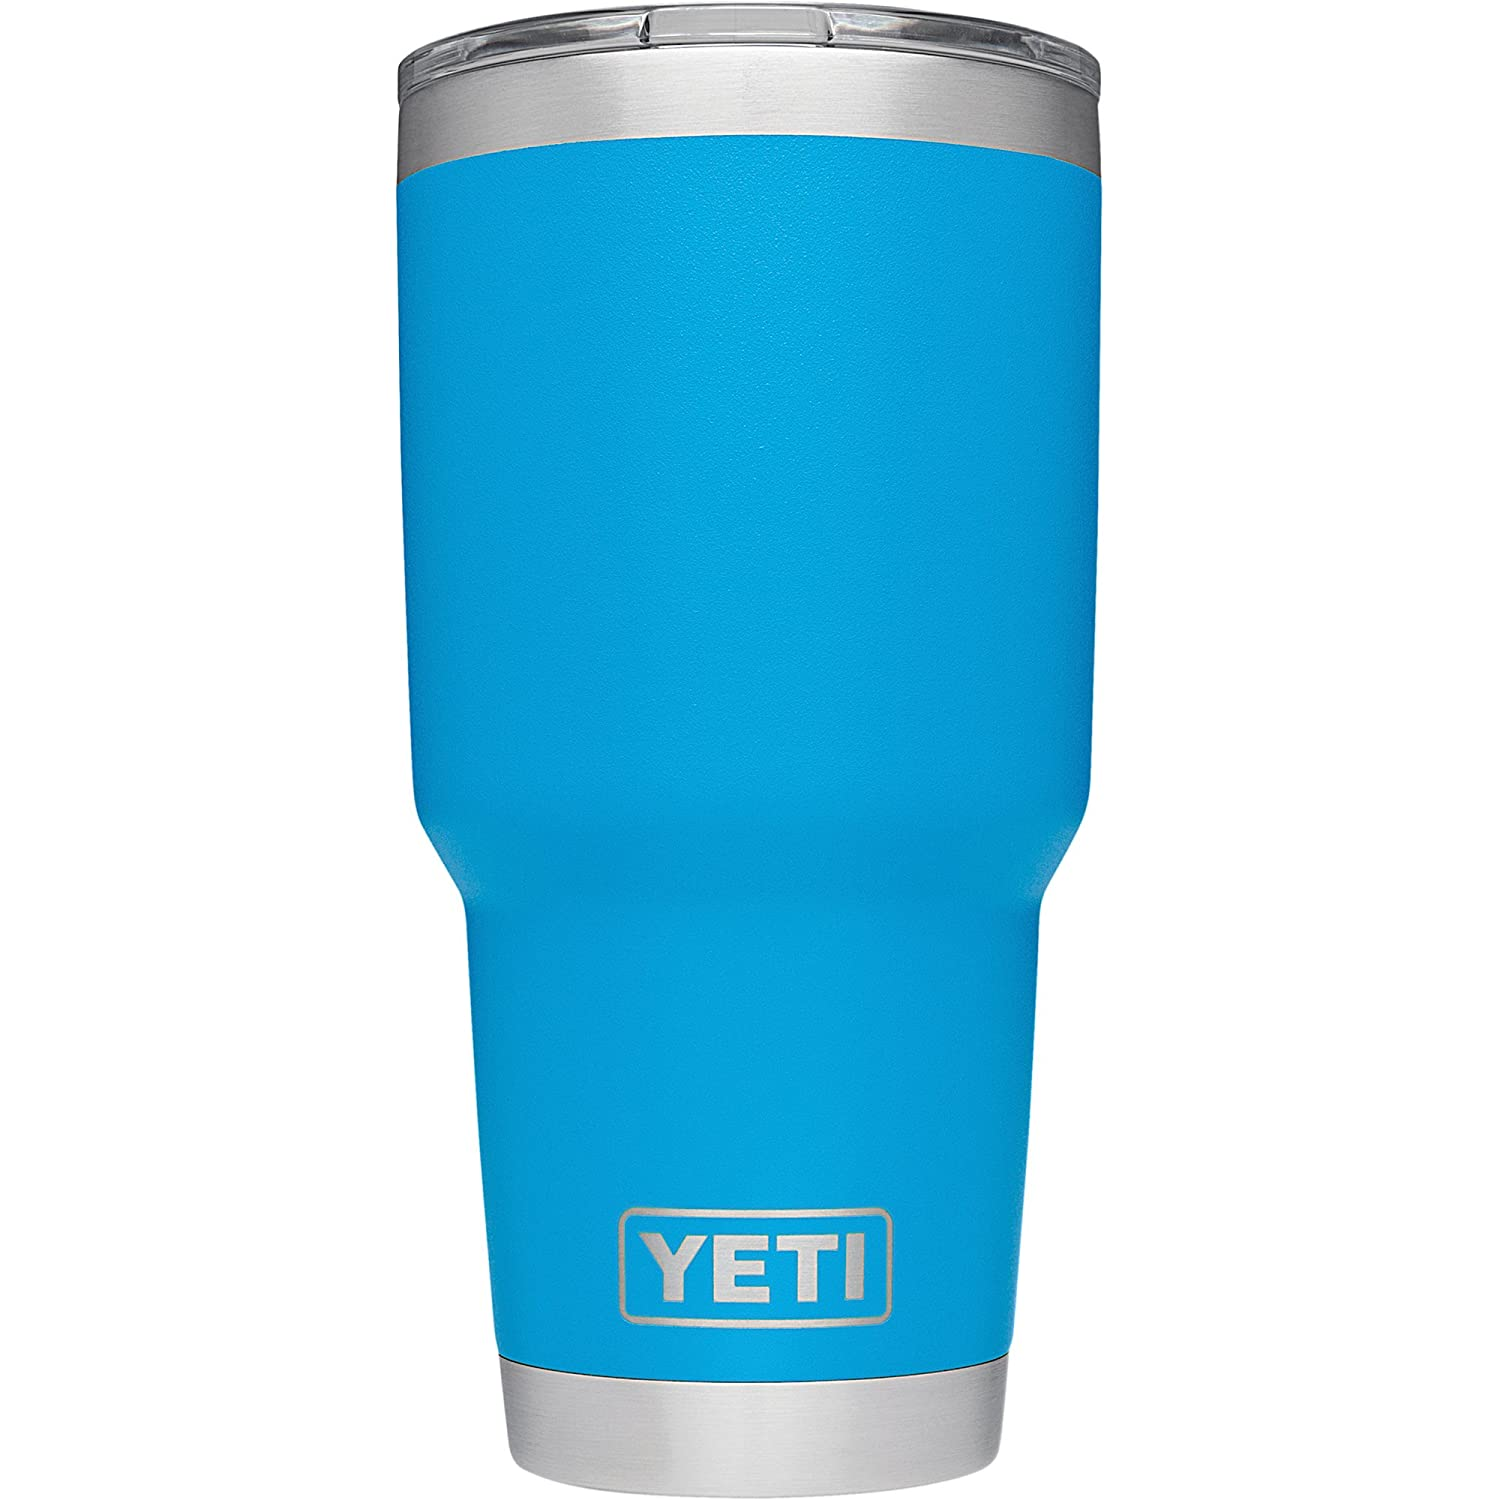 fd62d3a8703 Amazon.com | YETI Rambler 30 oz Stainless Steel Vacuum Insulated Tumbler  with Lid (Tahoe Blue): Tumblers & Water Glasses